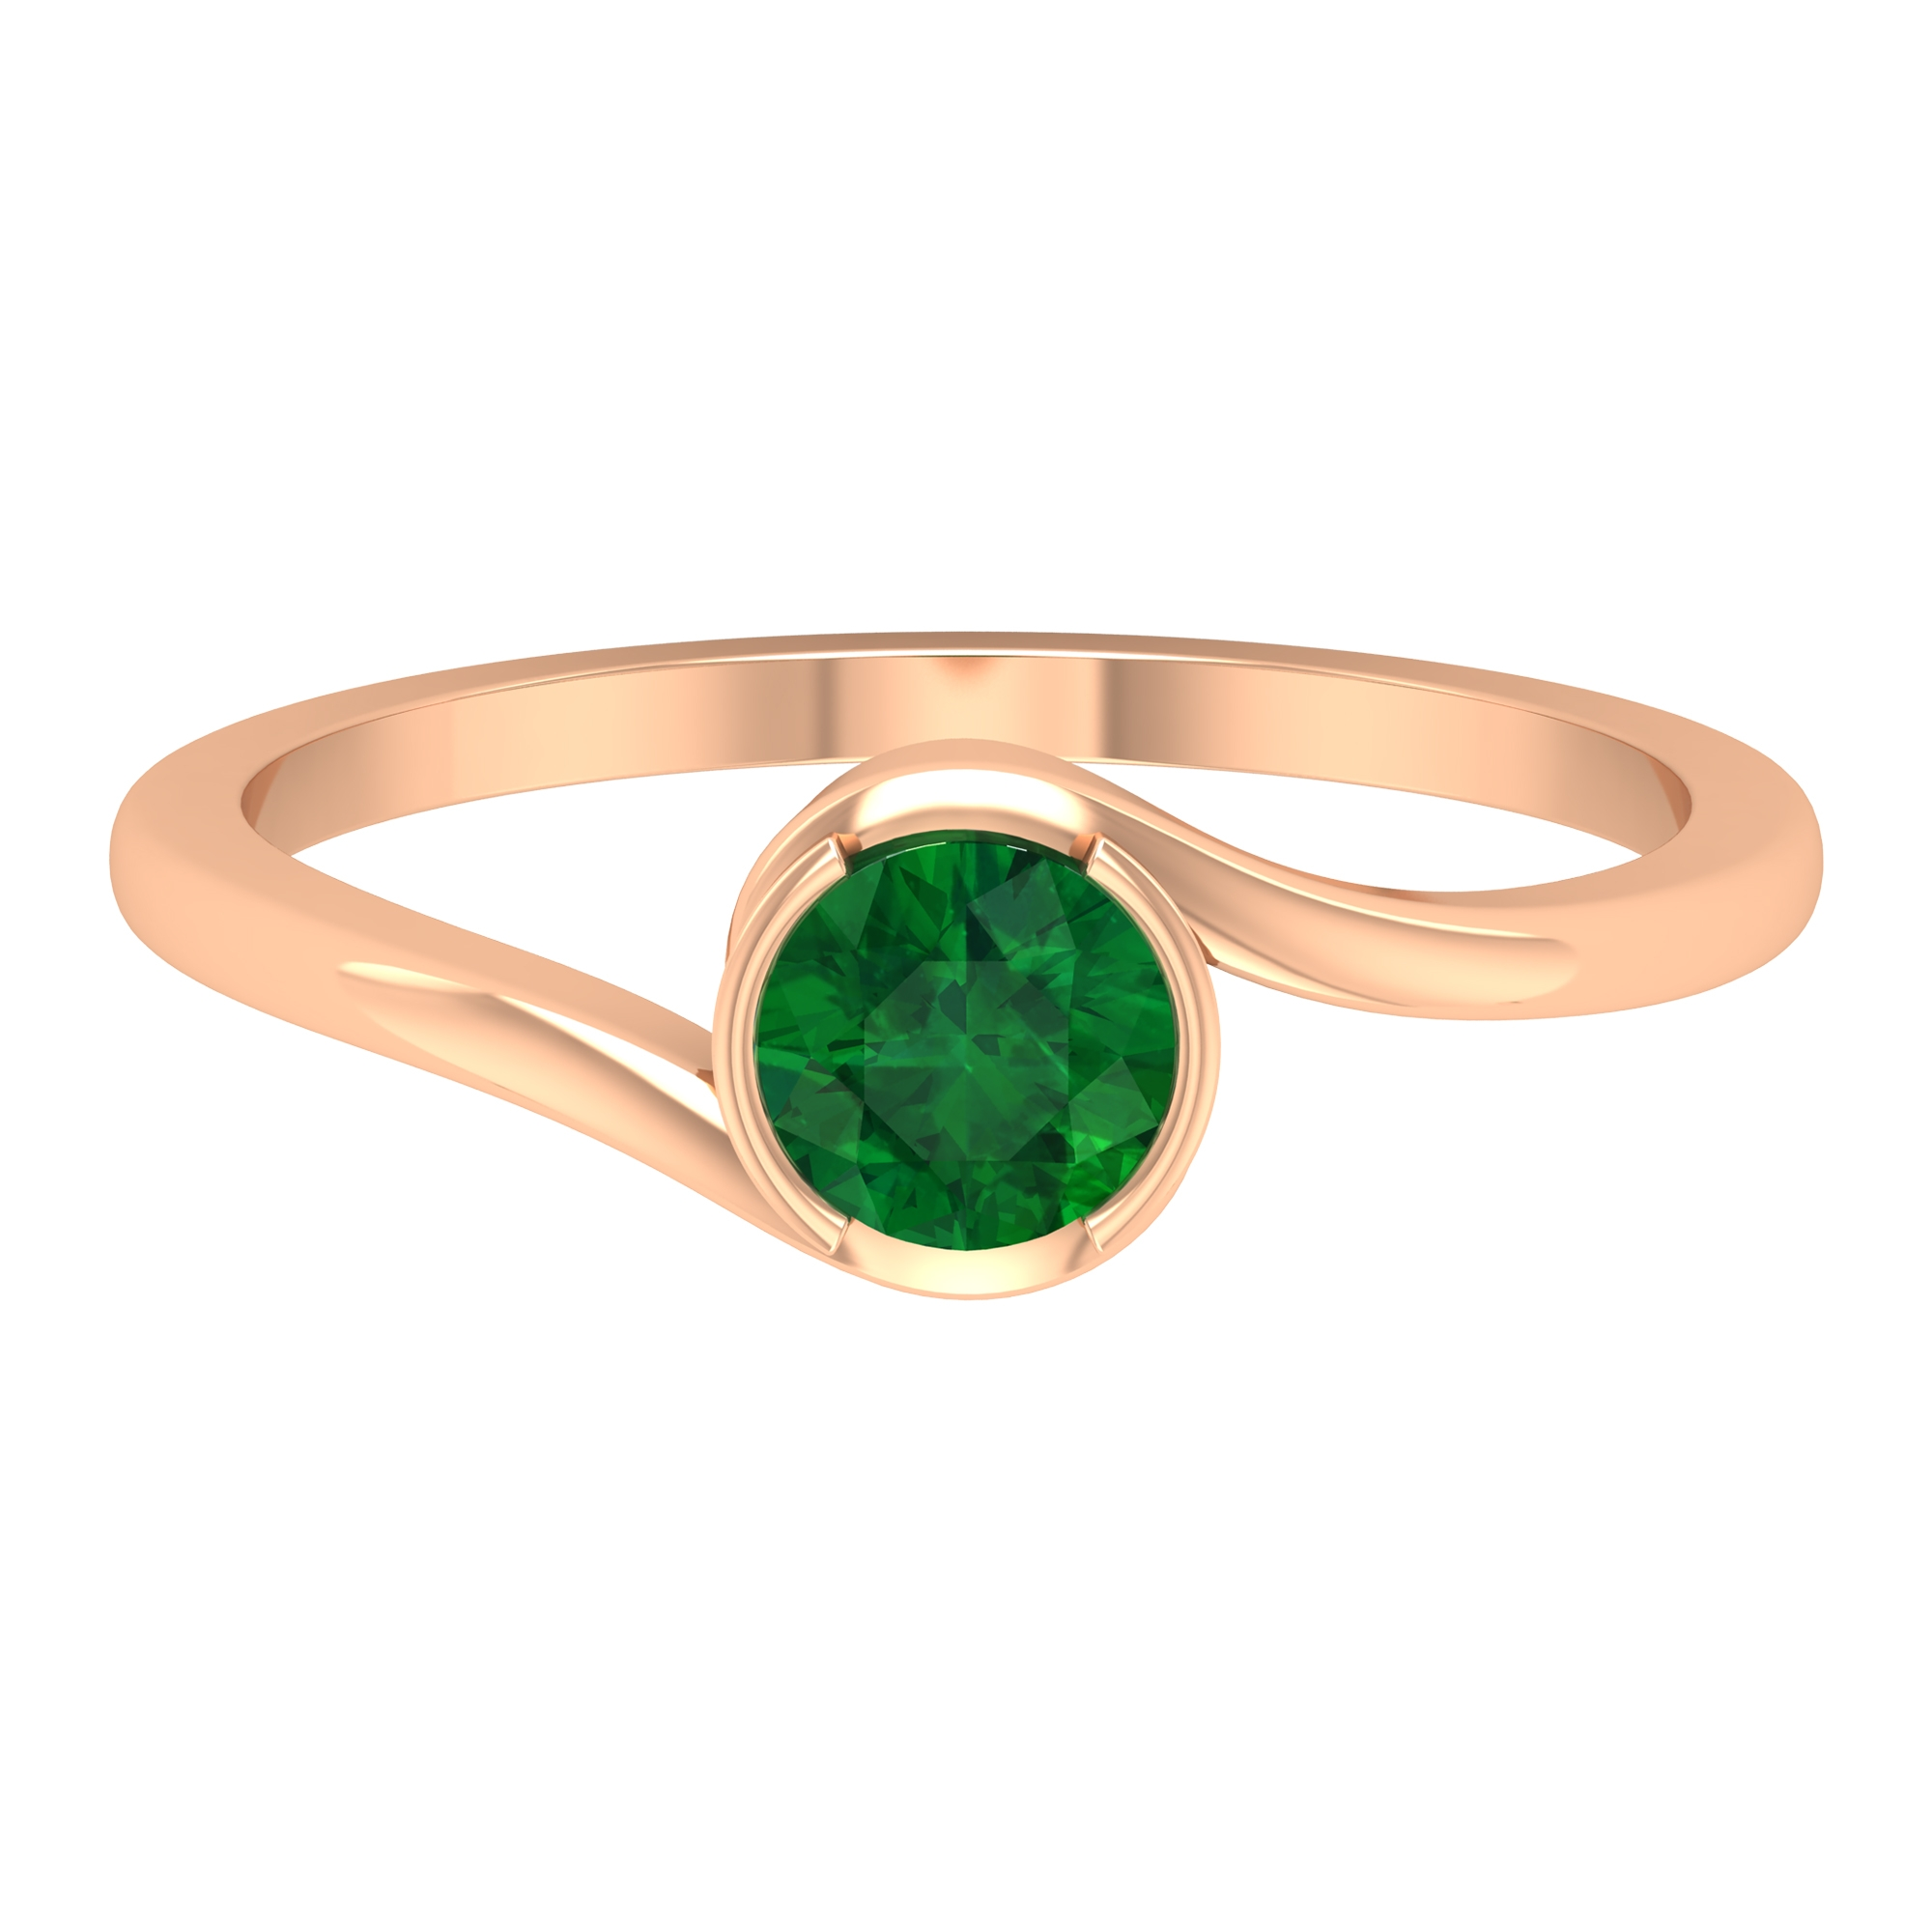 May Birthstone 5 MM Emerald Solitaire Ring in Half Bezel Setting with Bypass Shank